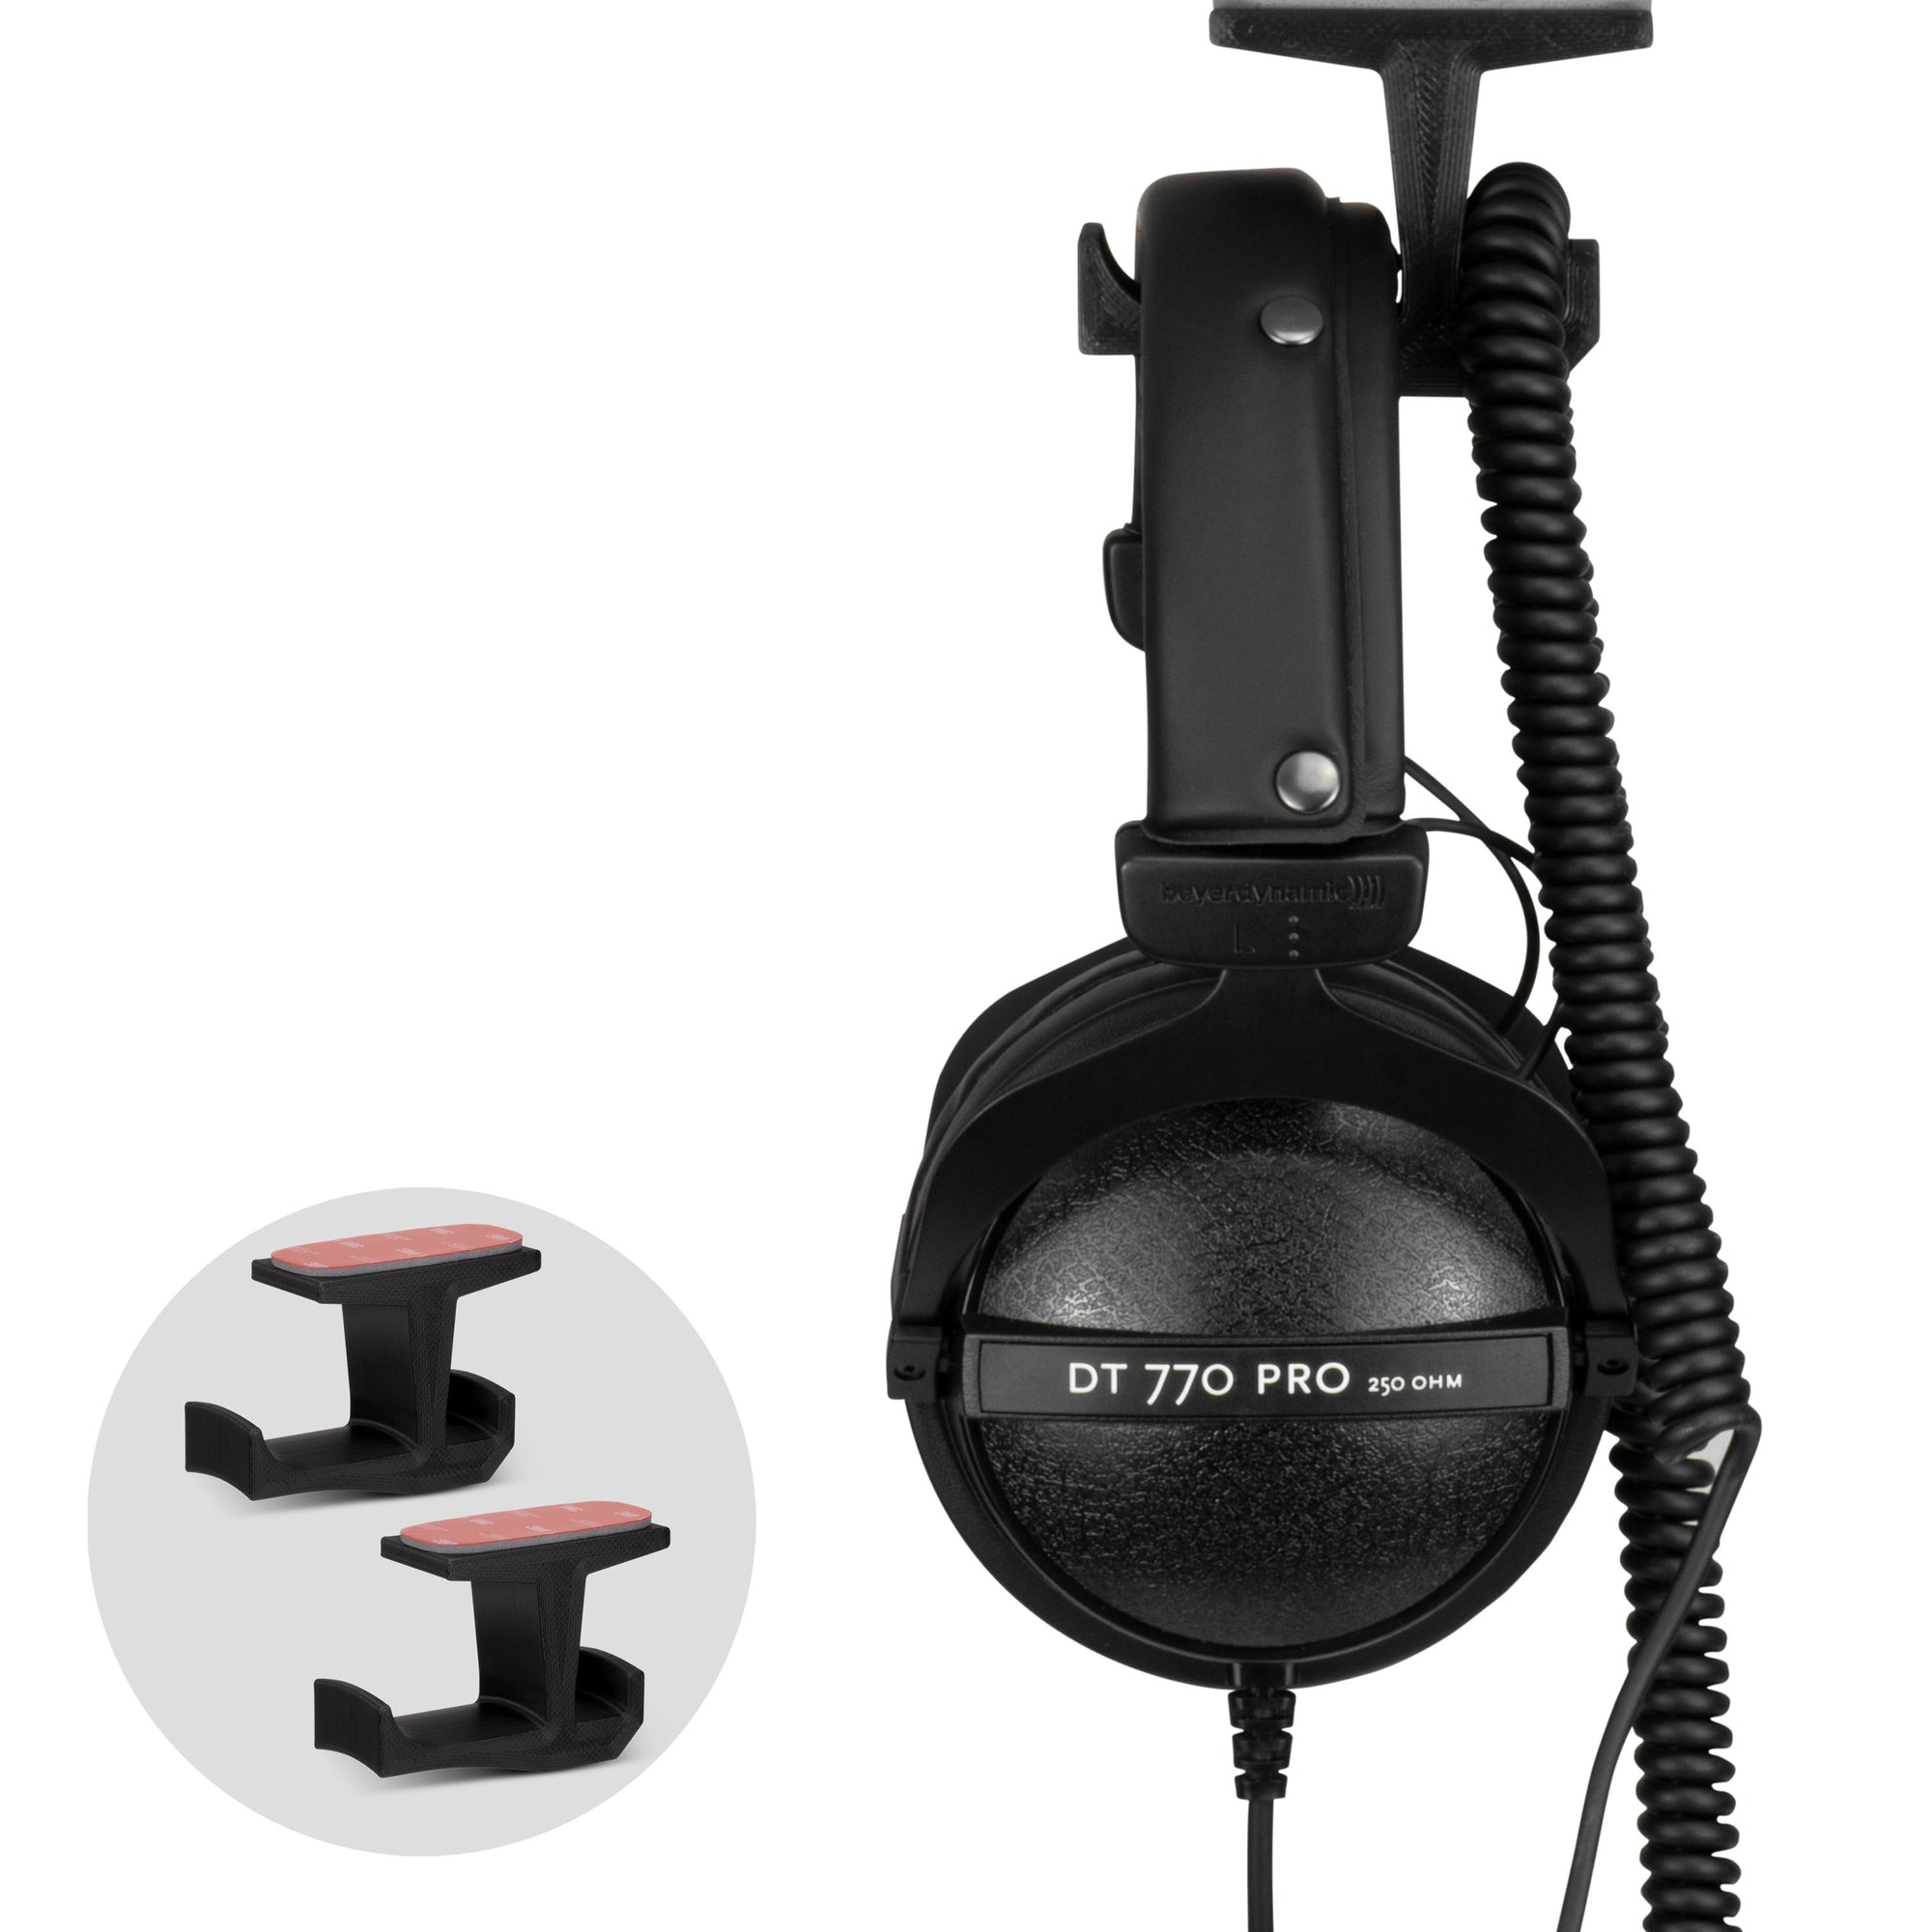 BigJ - Under Desk Headphone Hanger and Cable Organiser - 2 Pack